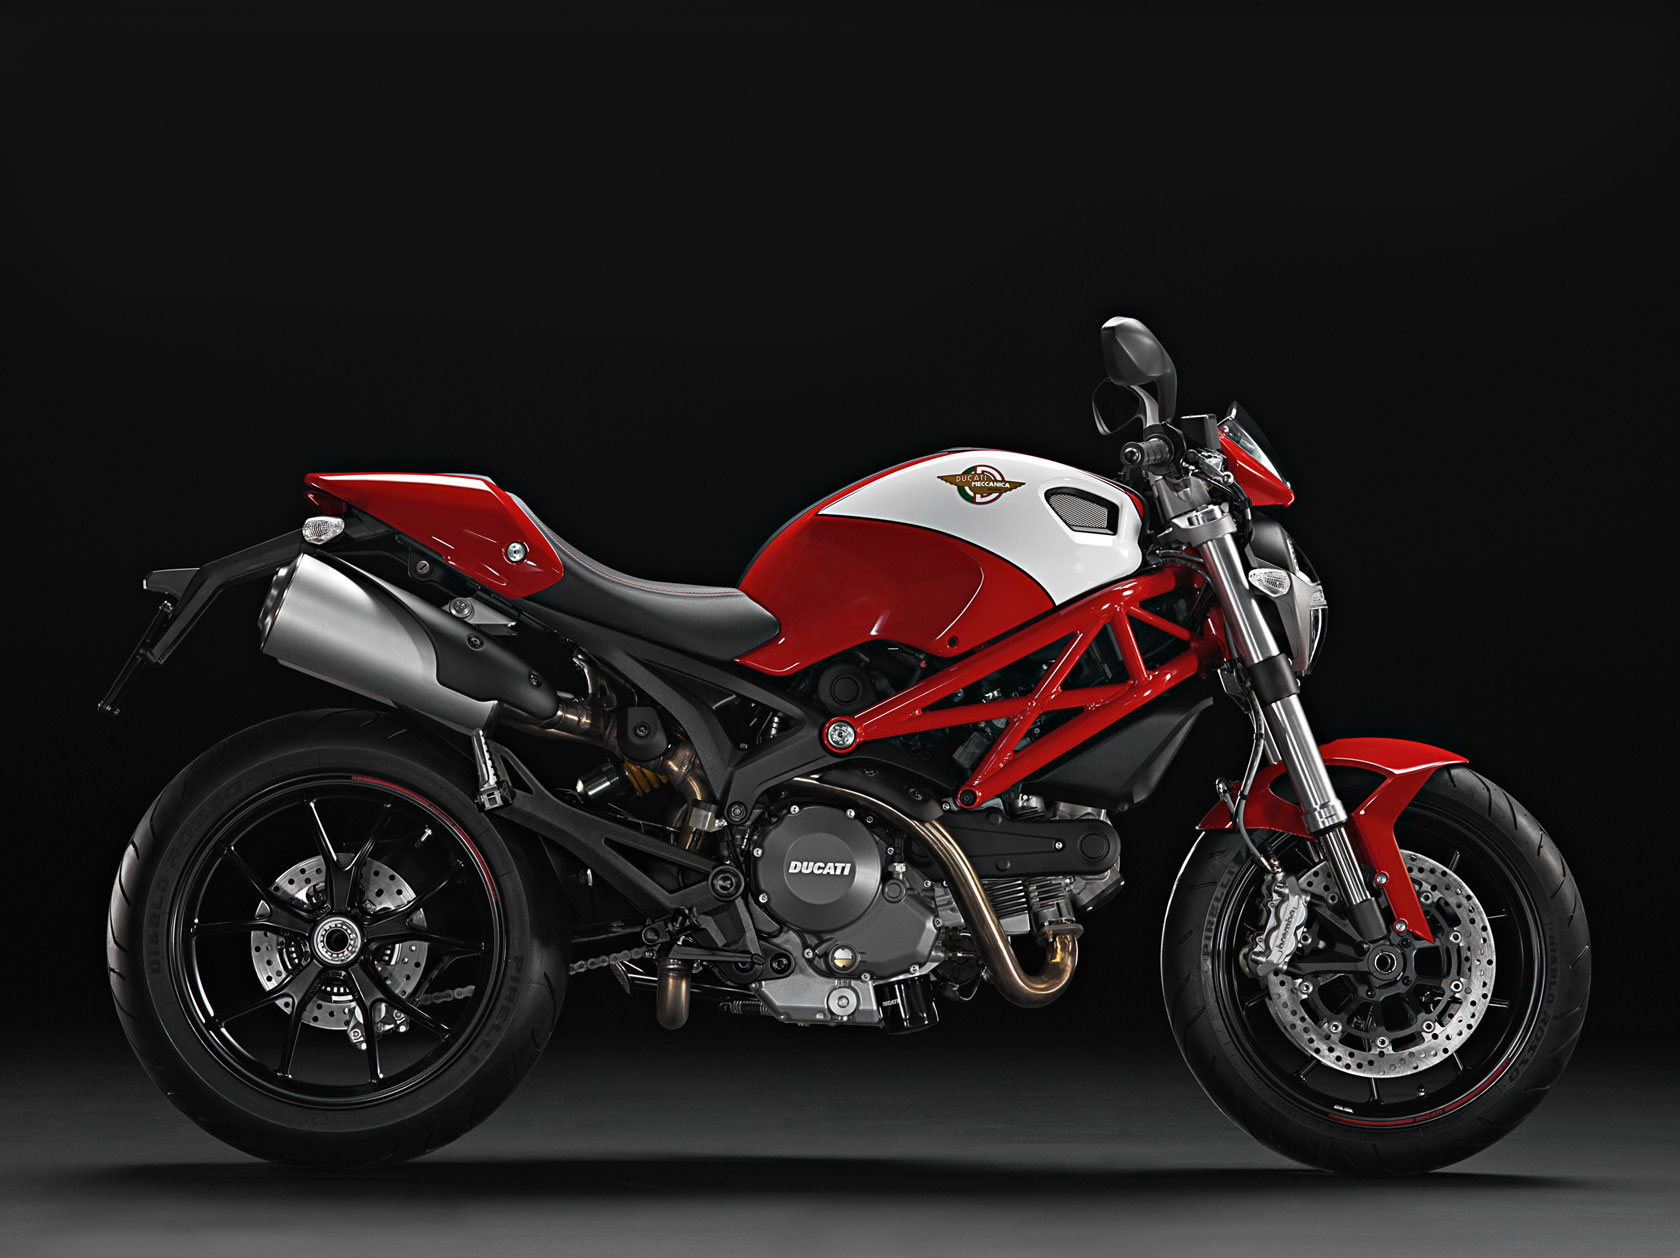 2010 Ducati Monster 696 And 796 13 Different Colors